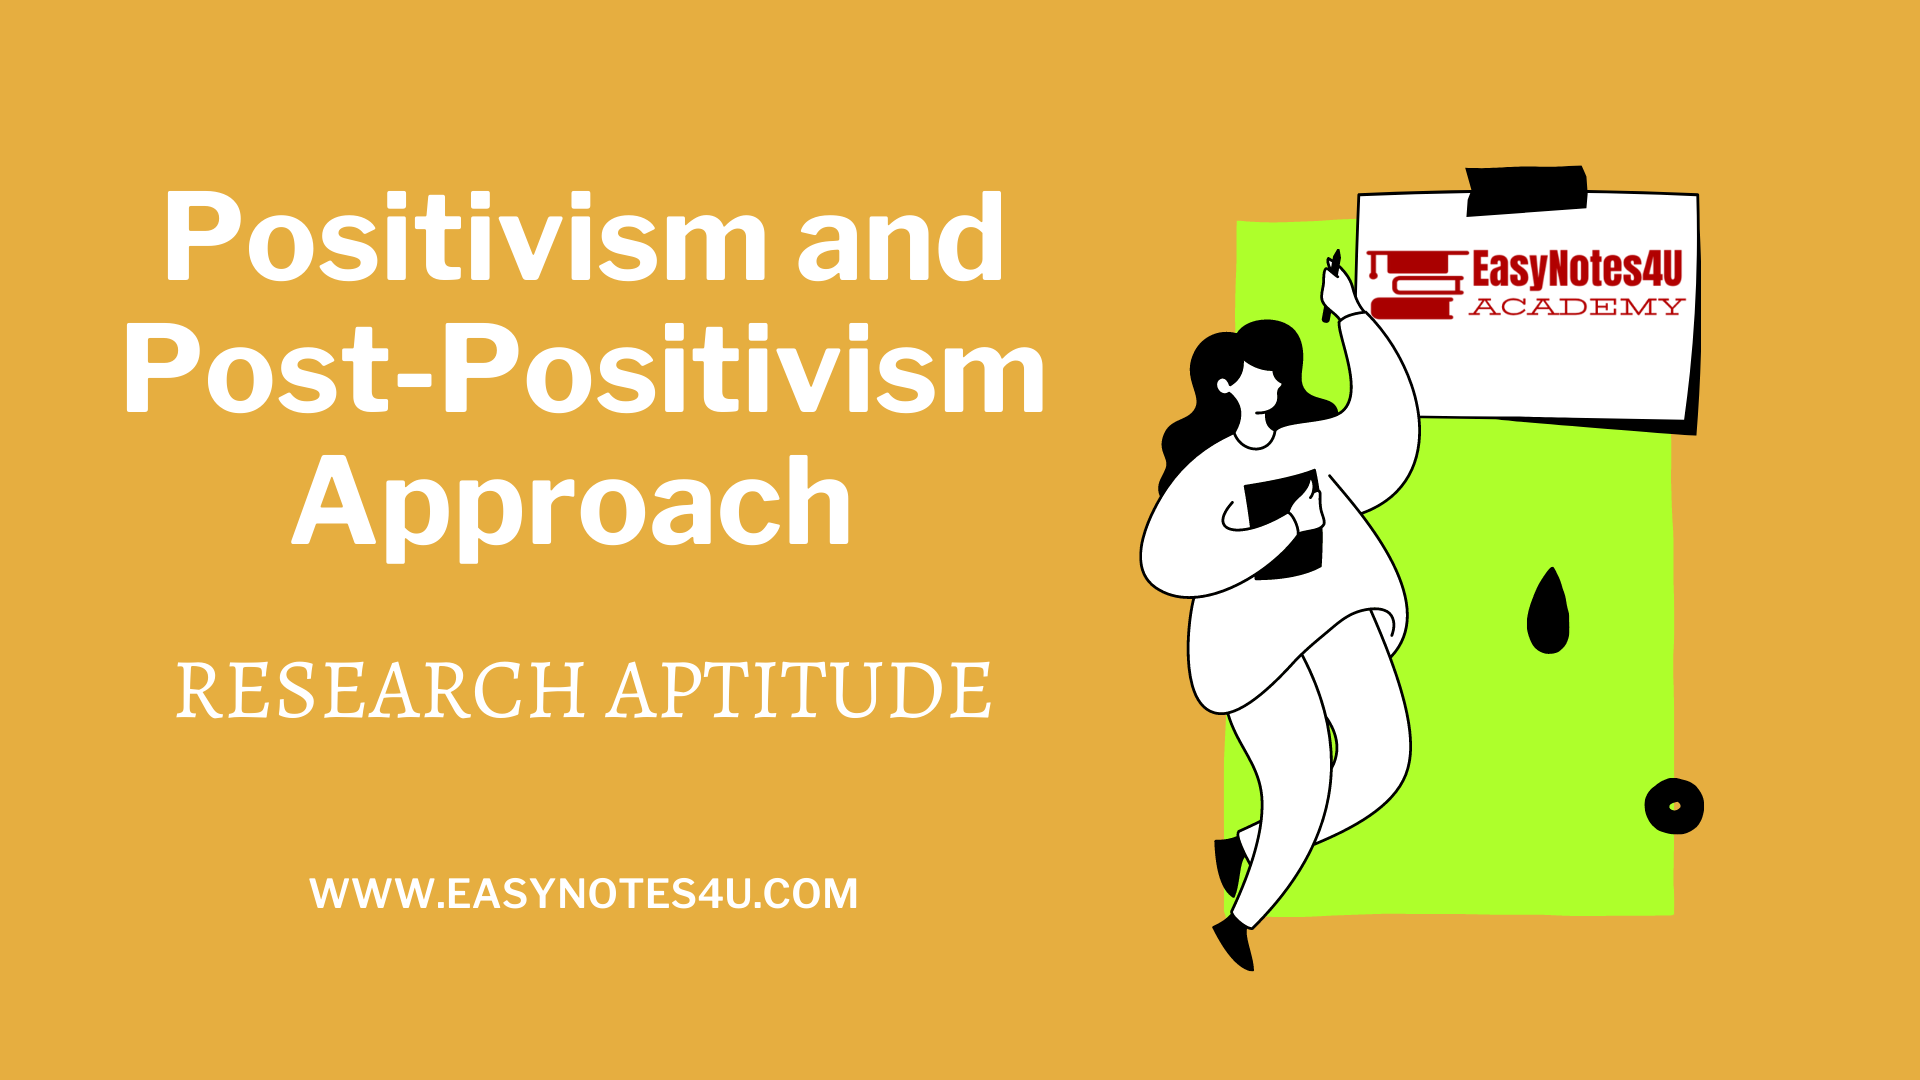 Positivism and Post-Positivism Approach – Research Aptitude